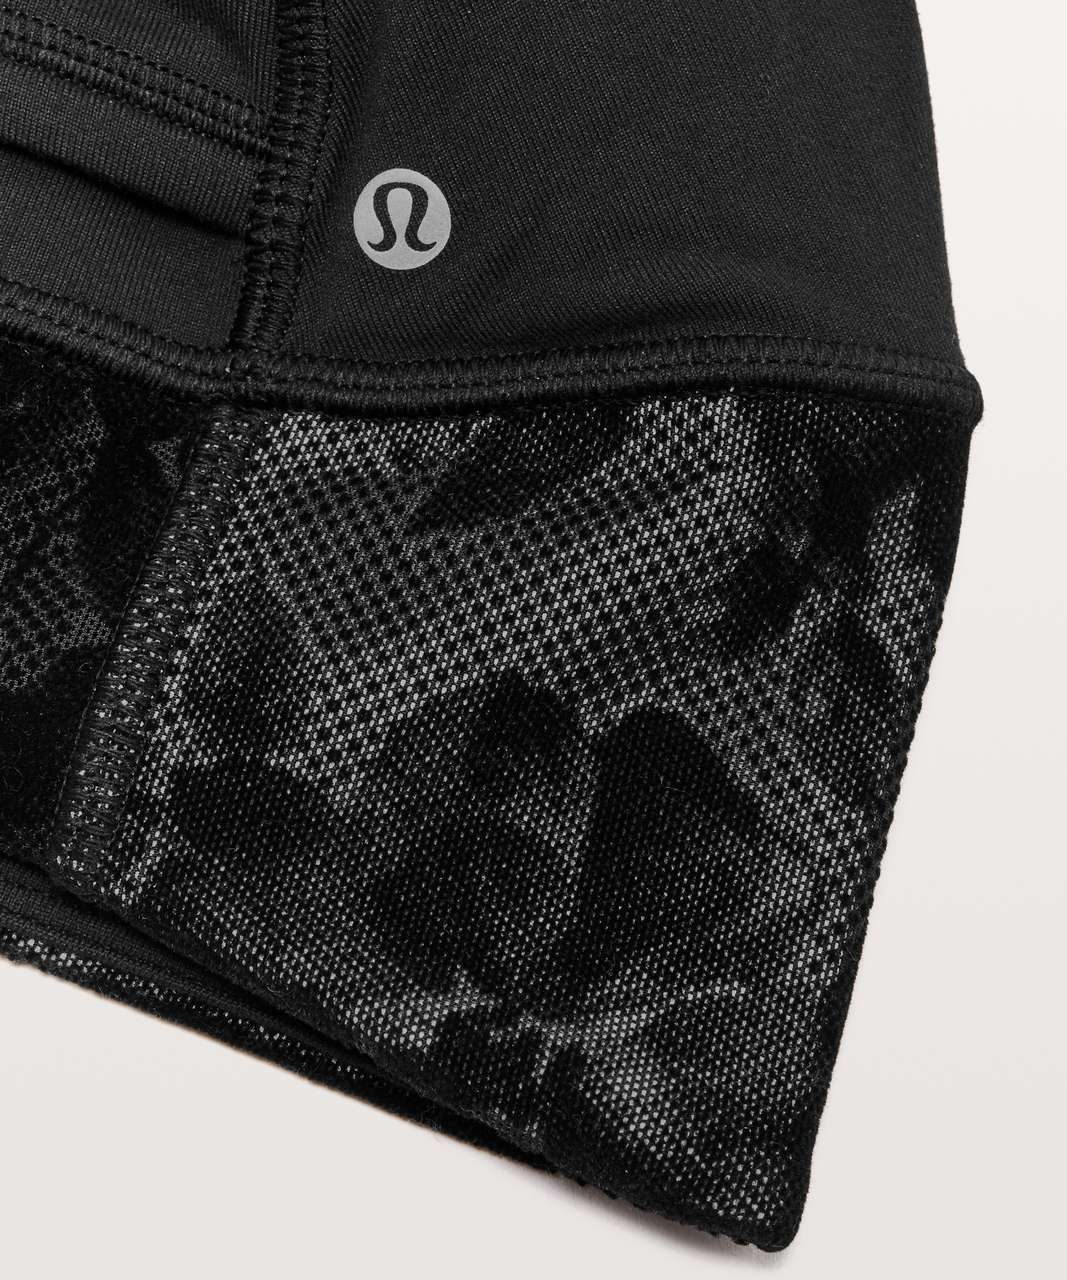 Lululemon Forget The Shivers Beanie - Black / Silver Reflective